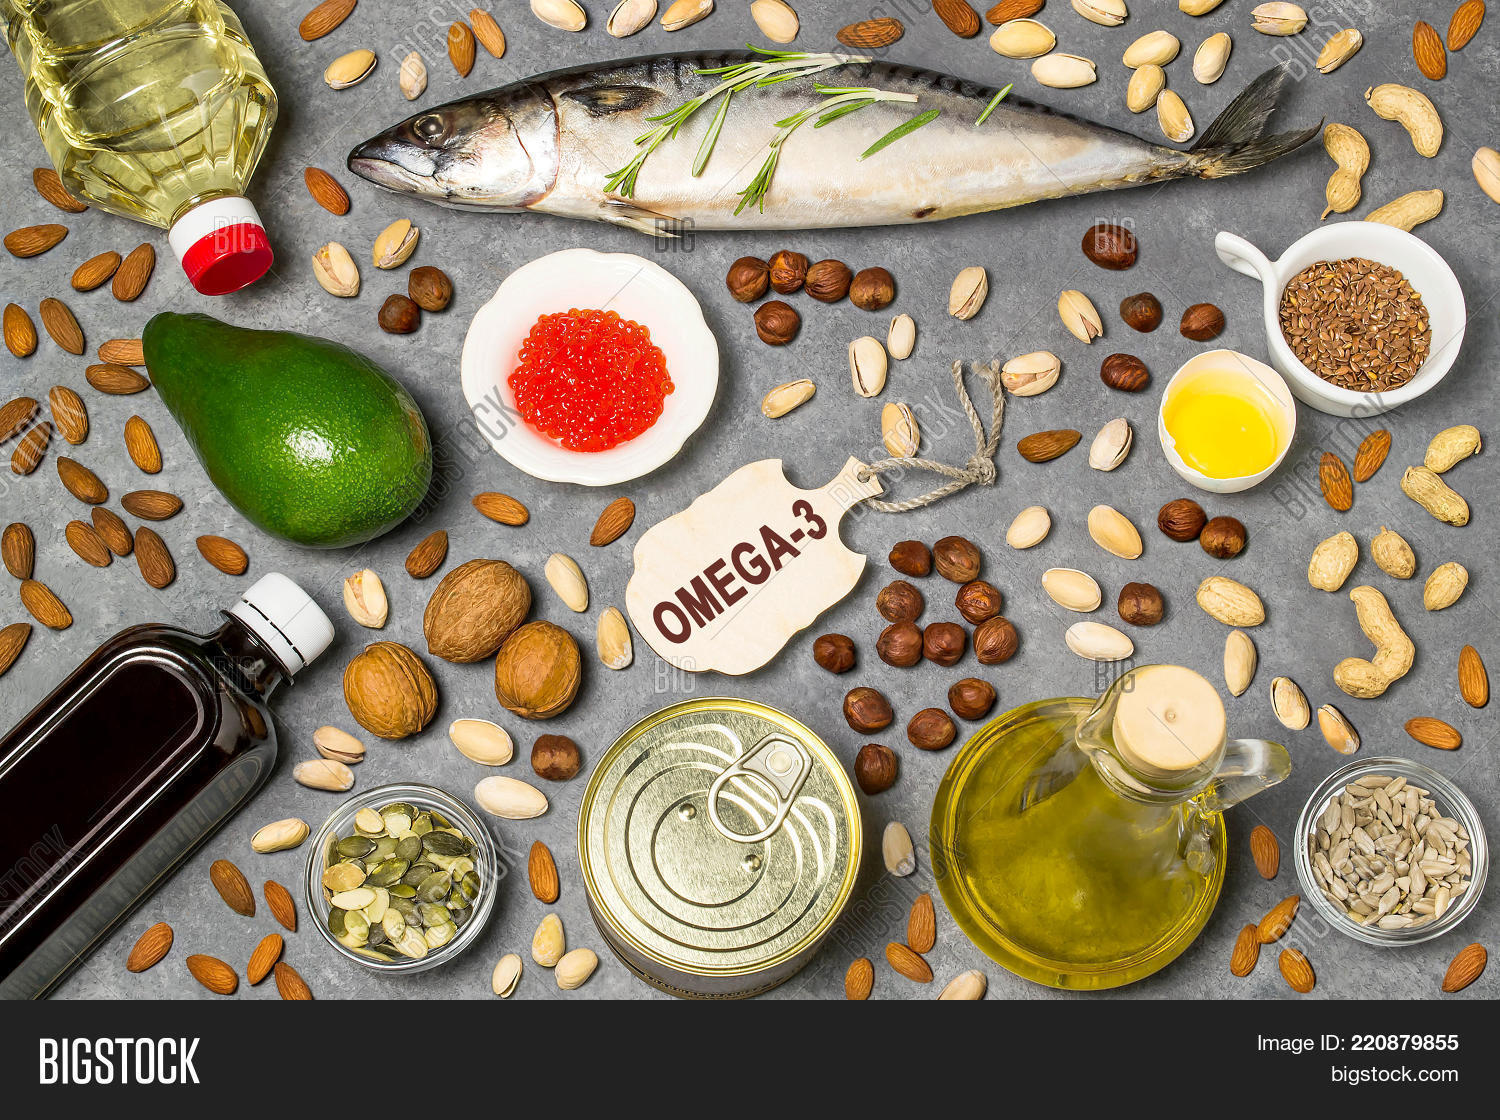 acids,almond,avocado,balanced,caviar,collection,concept,cooking,cottonseed,diet,eating,egg,fatty,fish,flax,food,hazelnut,health,important,ingredient,lifestyle,mackerel,natural,nutrient,oil,omega-3,organic,peanut,pistachio,prevention,pumpkin,rapeseed,red,rich,rosemary,sardine,scomber,seafood,seed,source,sunflower,tag,useful,various,vitamin,walnut,yolk